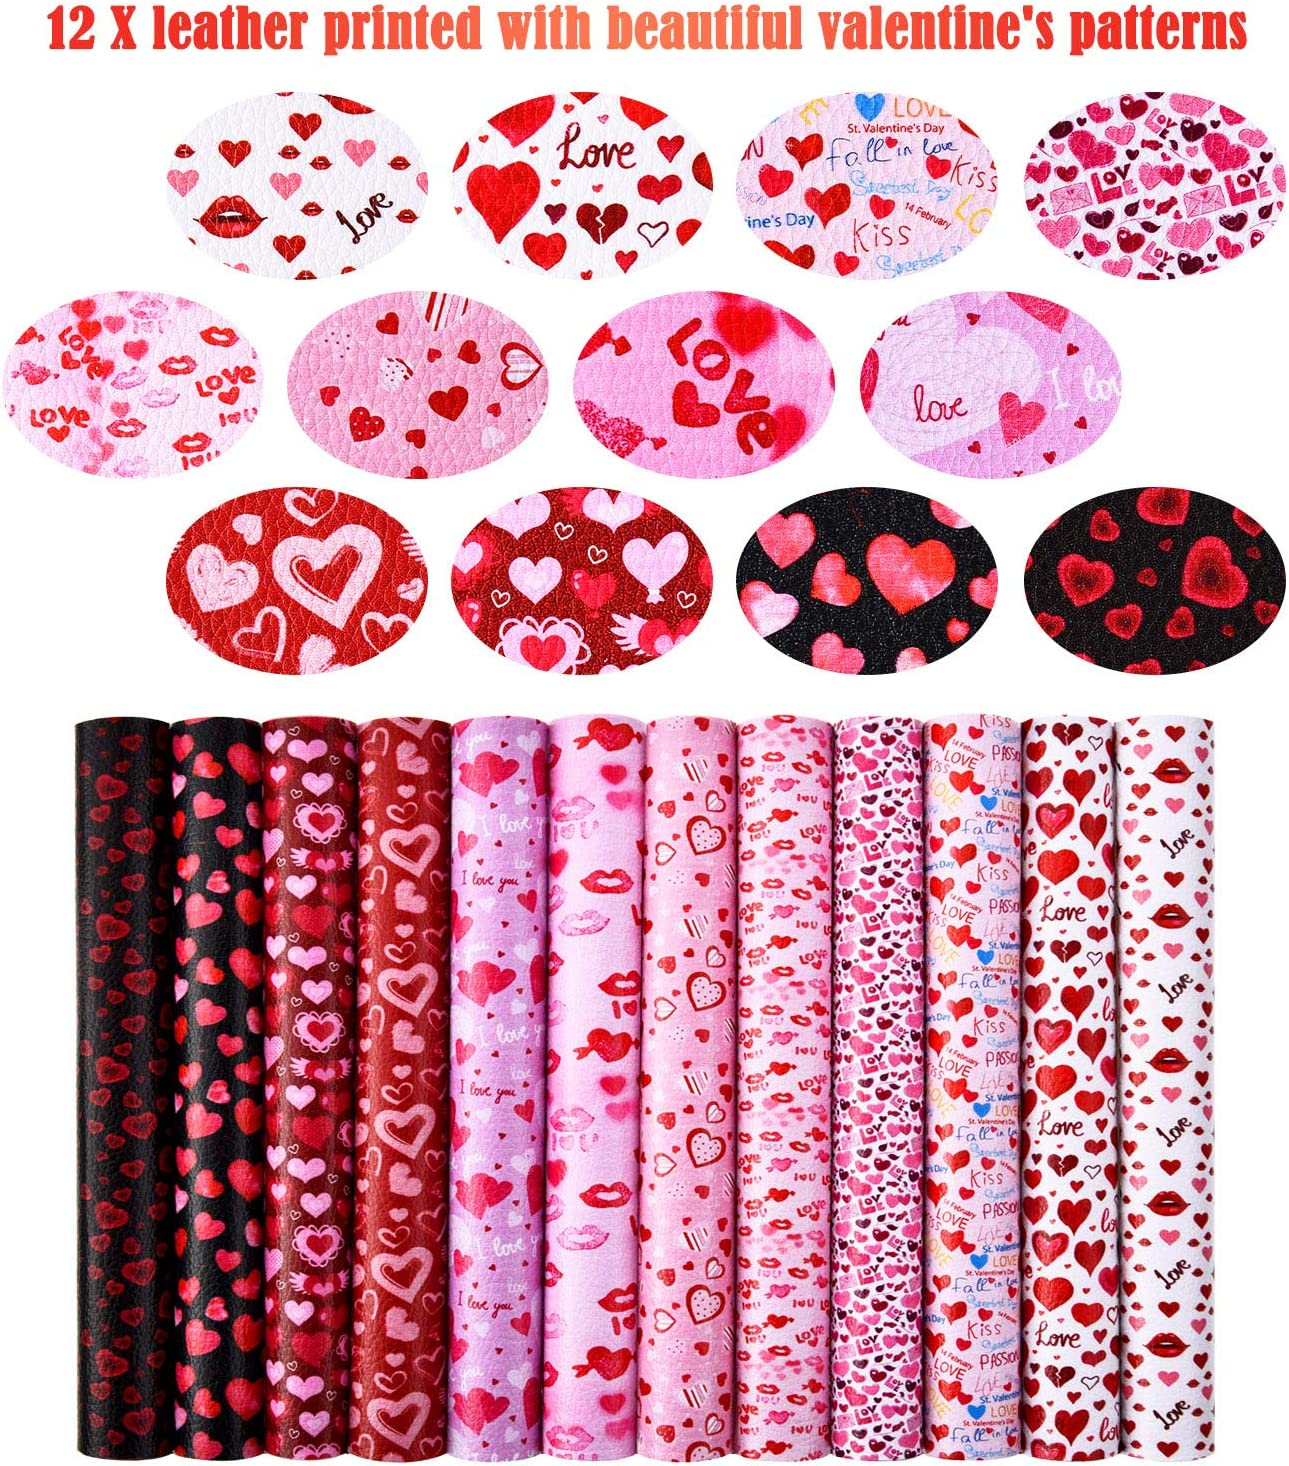 Synthetic Leather Printed Sewing Leatherette DIY Fabric For Bag /& Bow Making Faux Leather Sheets Love Valentine Red Lipstick Kiss